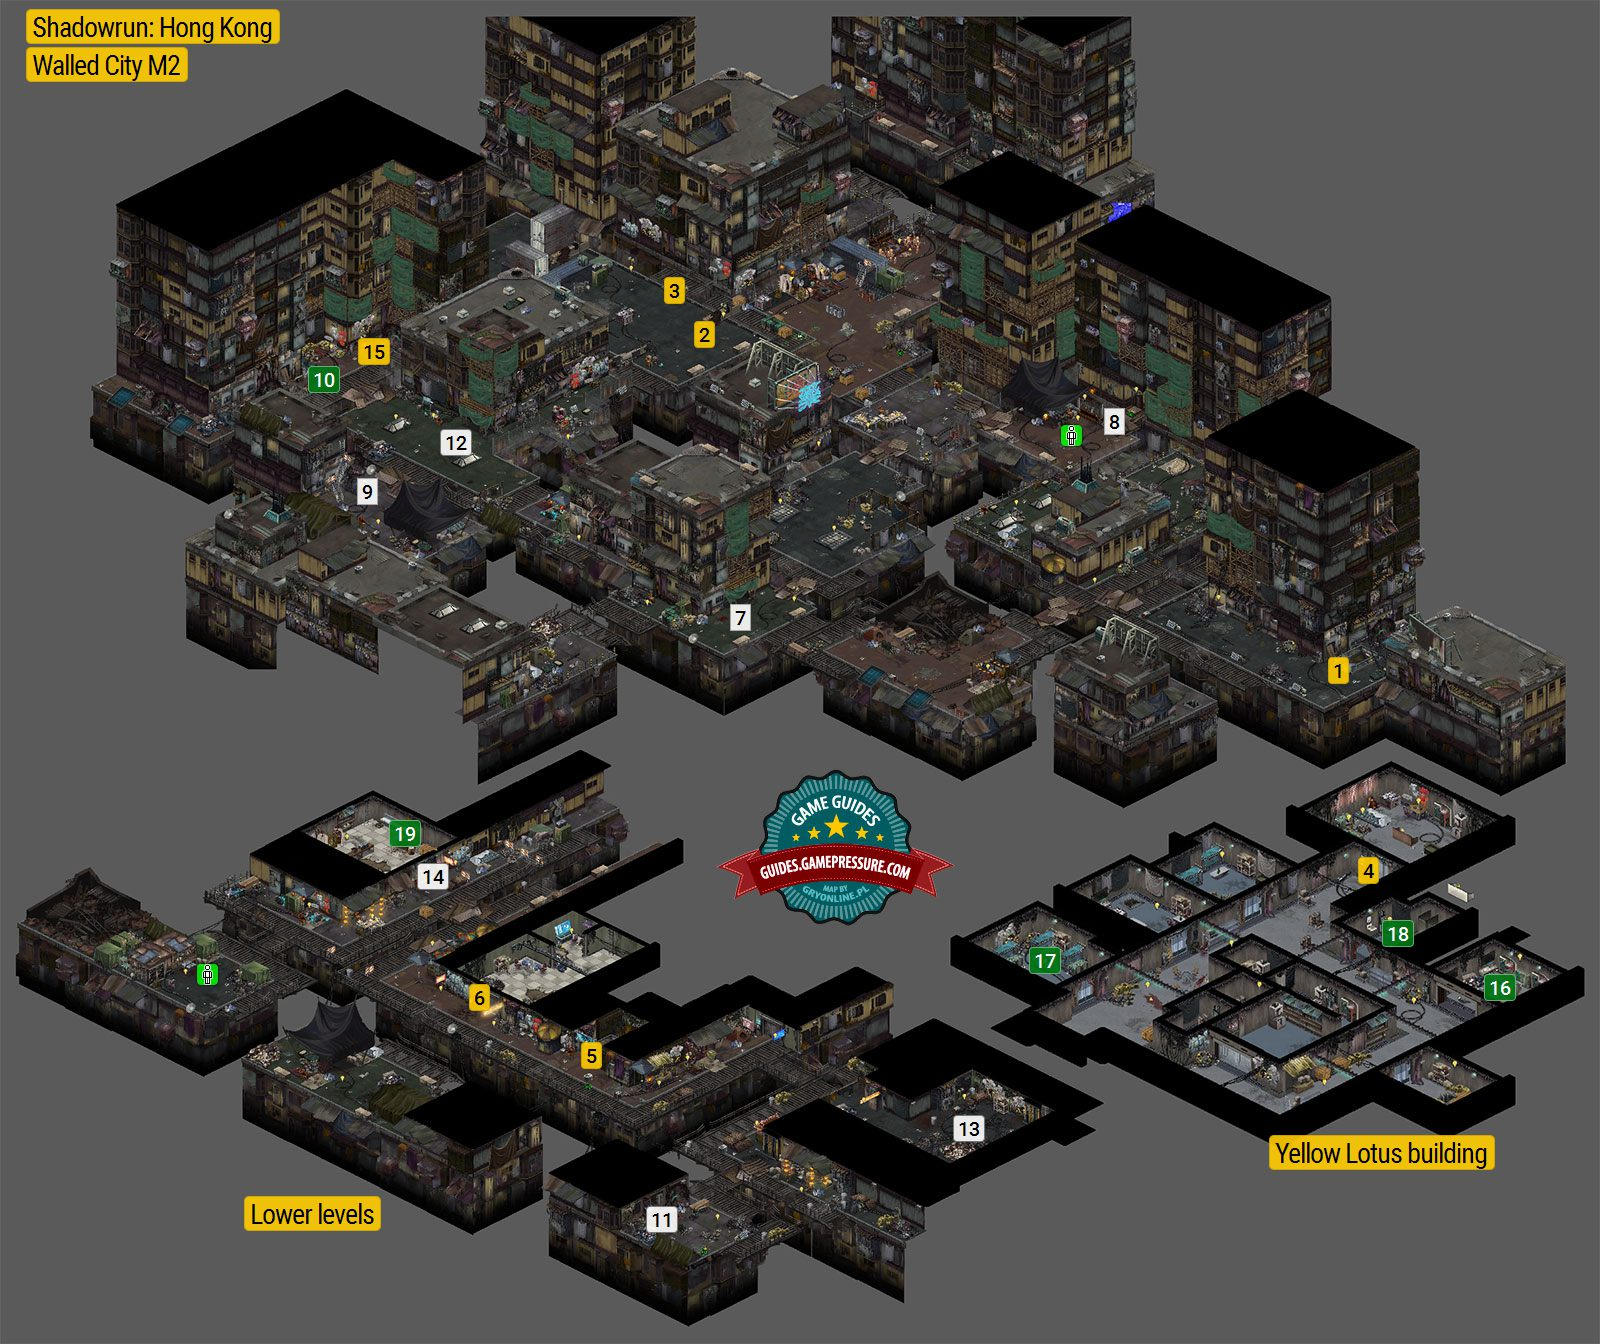 Walled City M2   Frequently asked questions - Shadowrun: Hong Kong Game  Guide   gamepressure.com